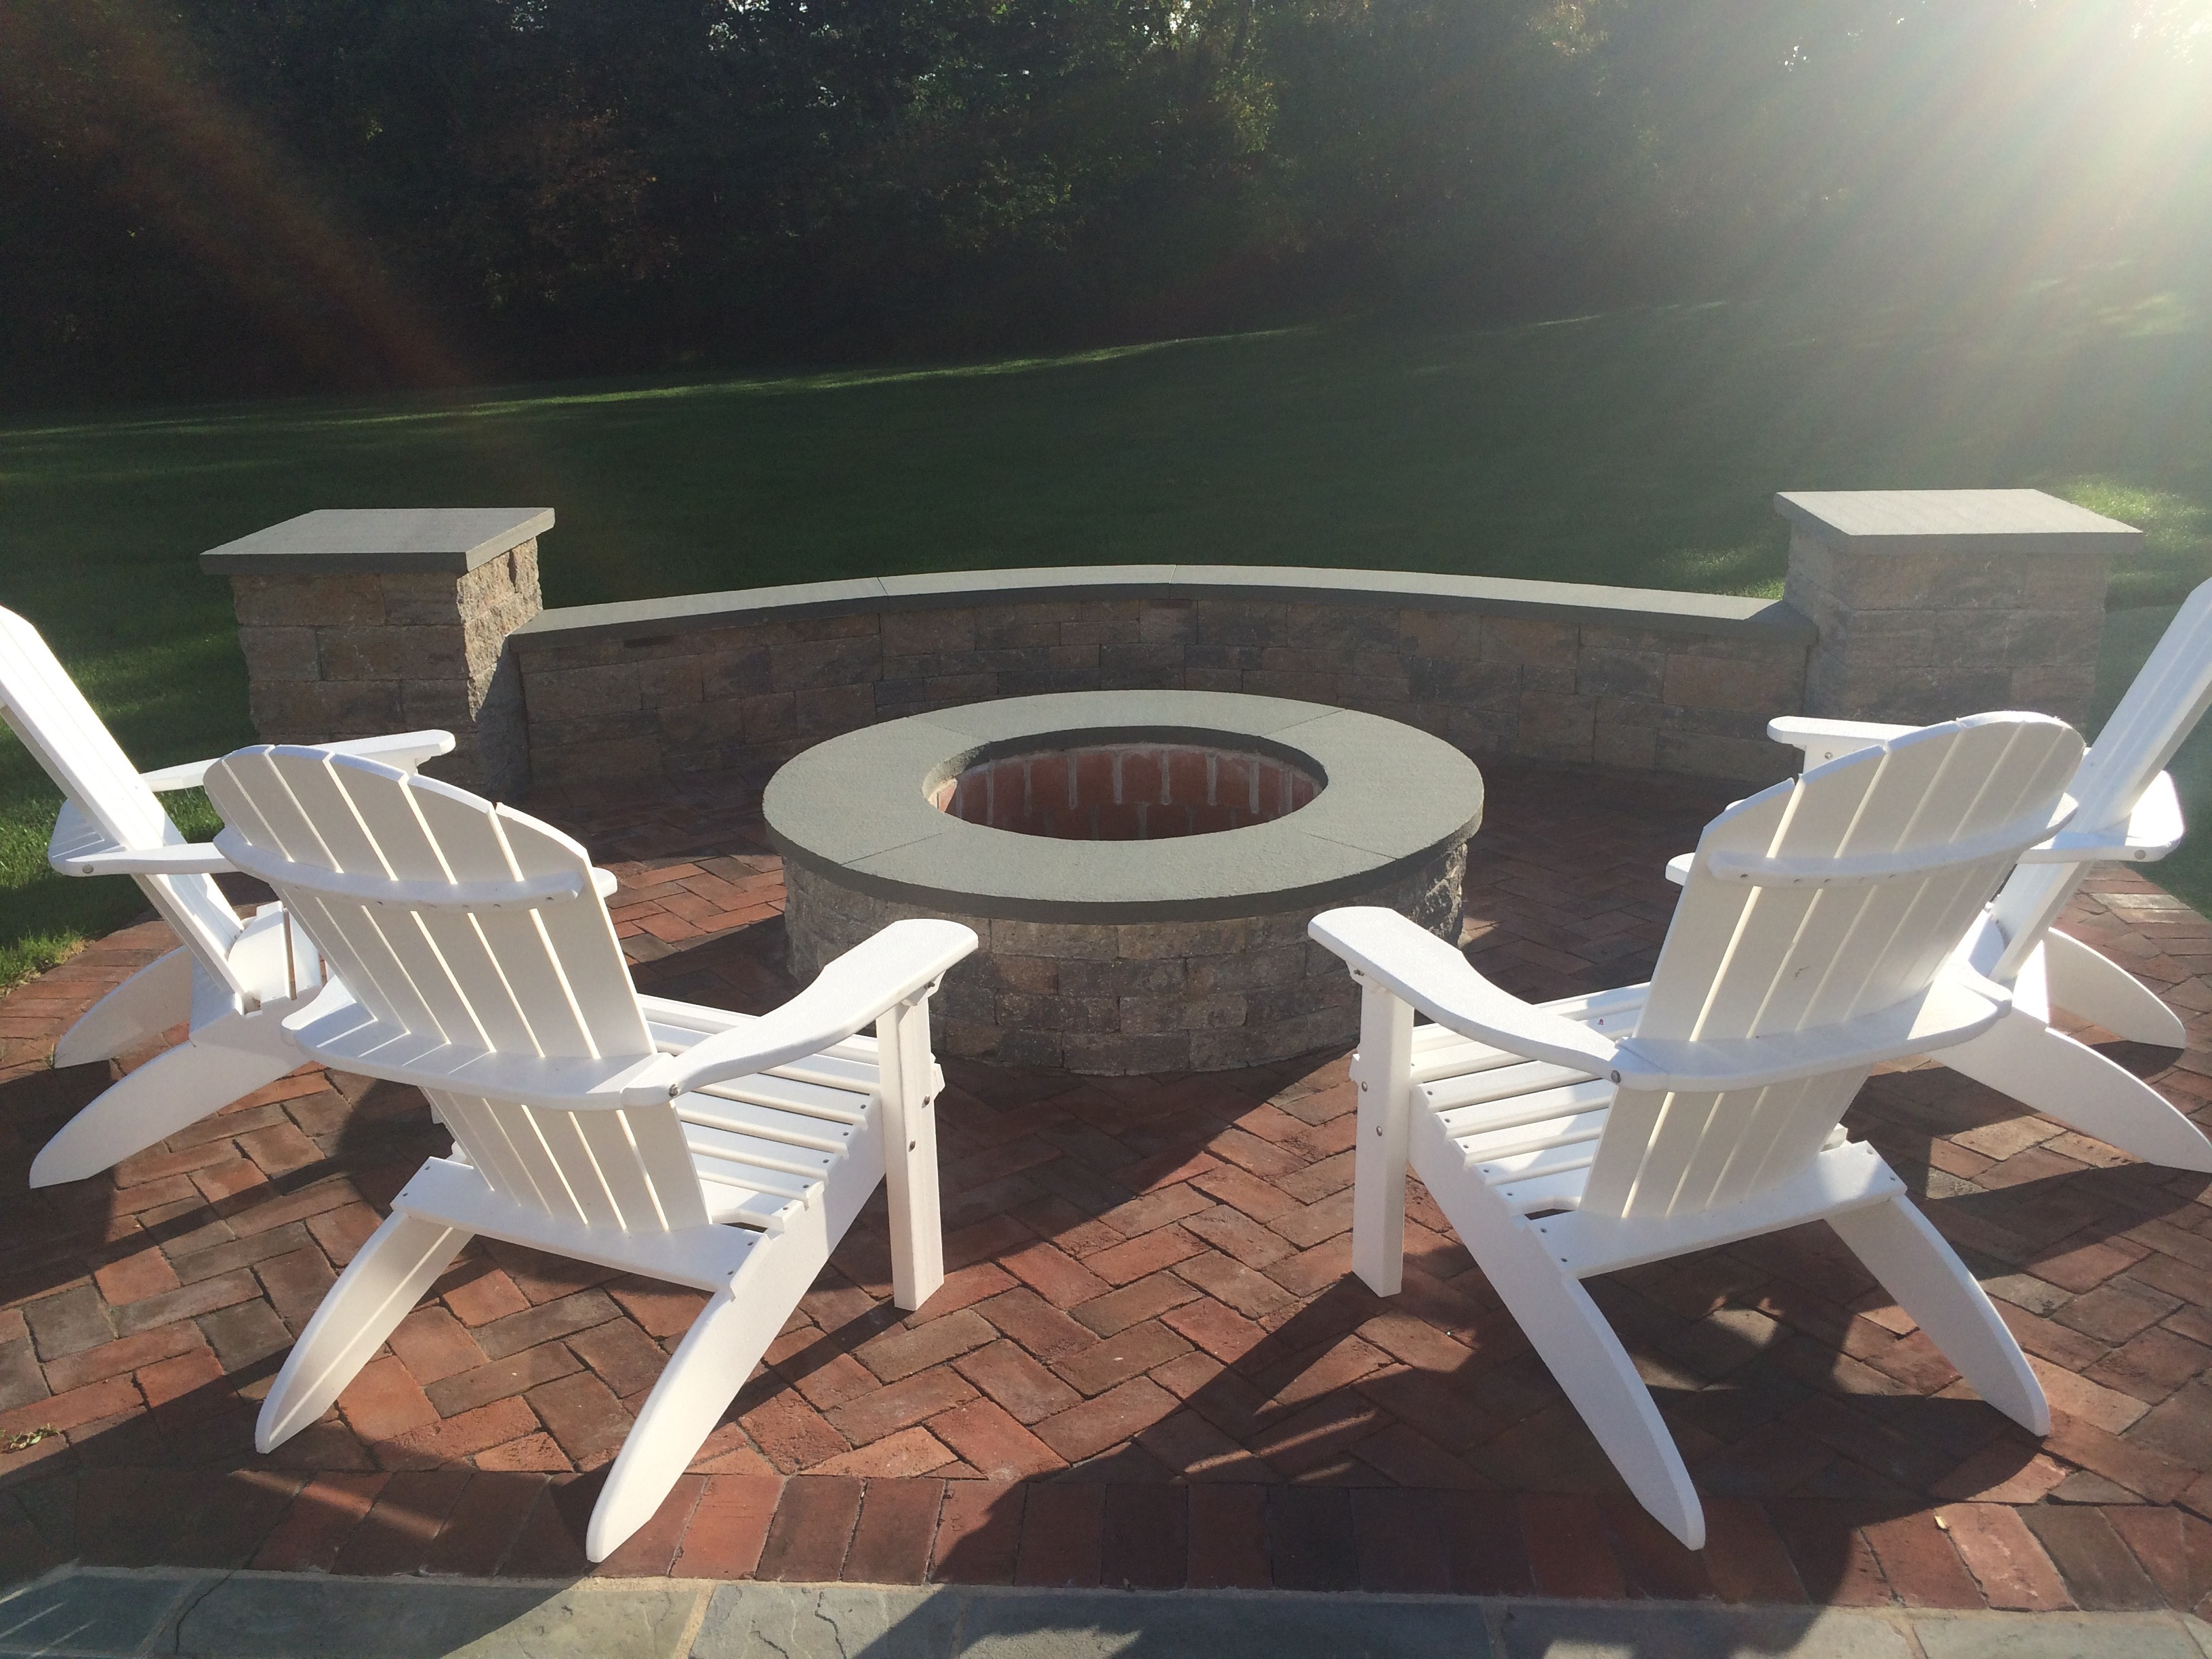 fire pit, seat wall, patio, pillar